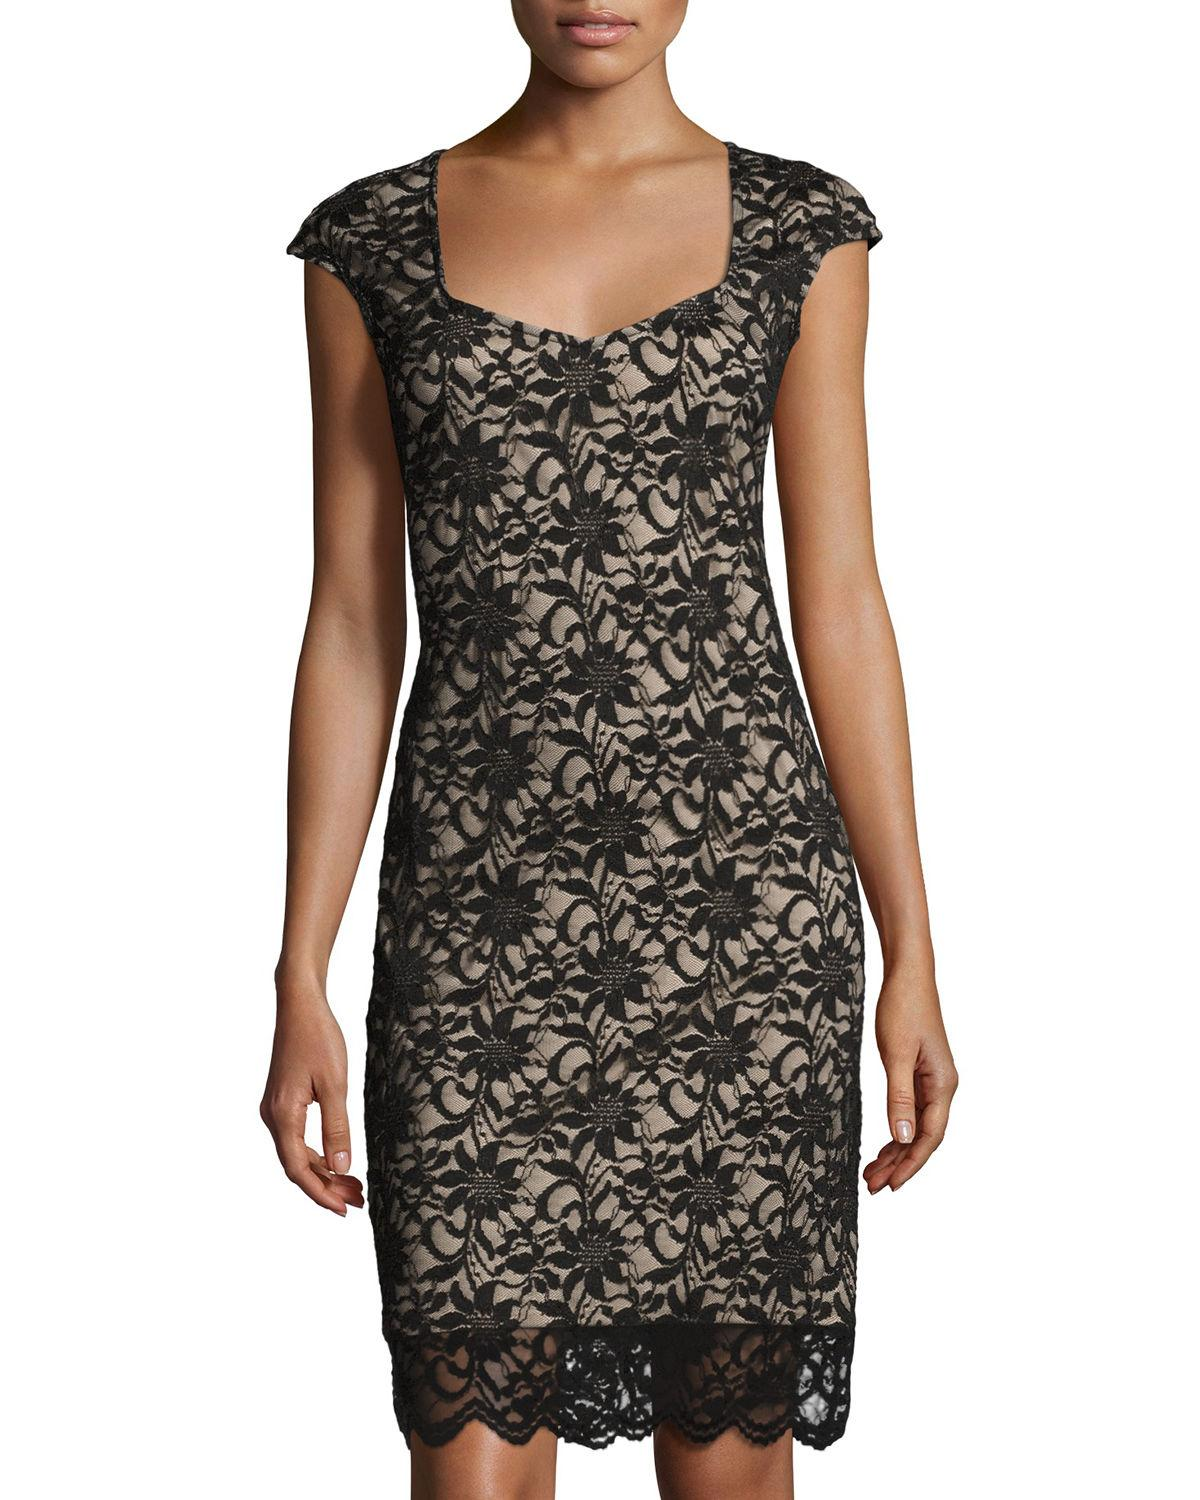 Lyst neiman marcus lace overlay sheath dress in black for Neiman marcus wedding guest dresses